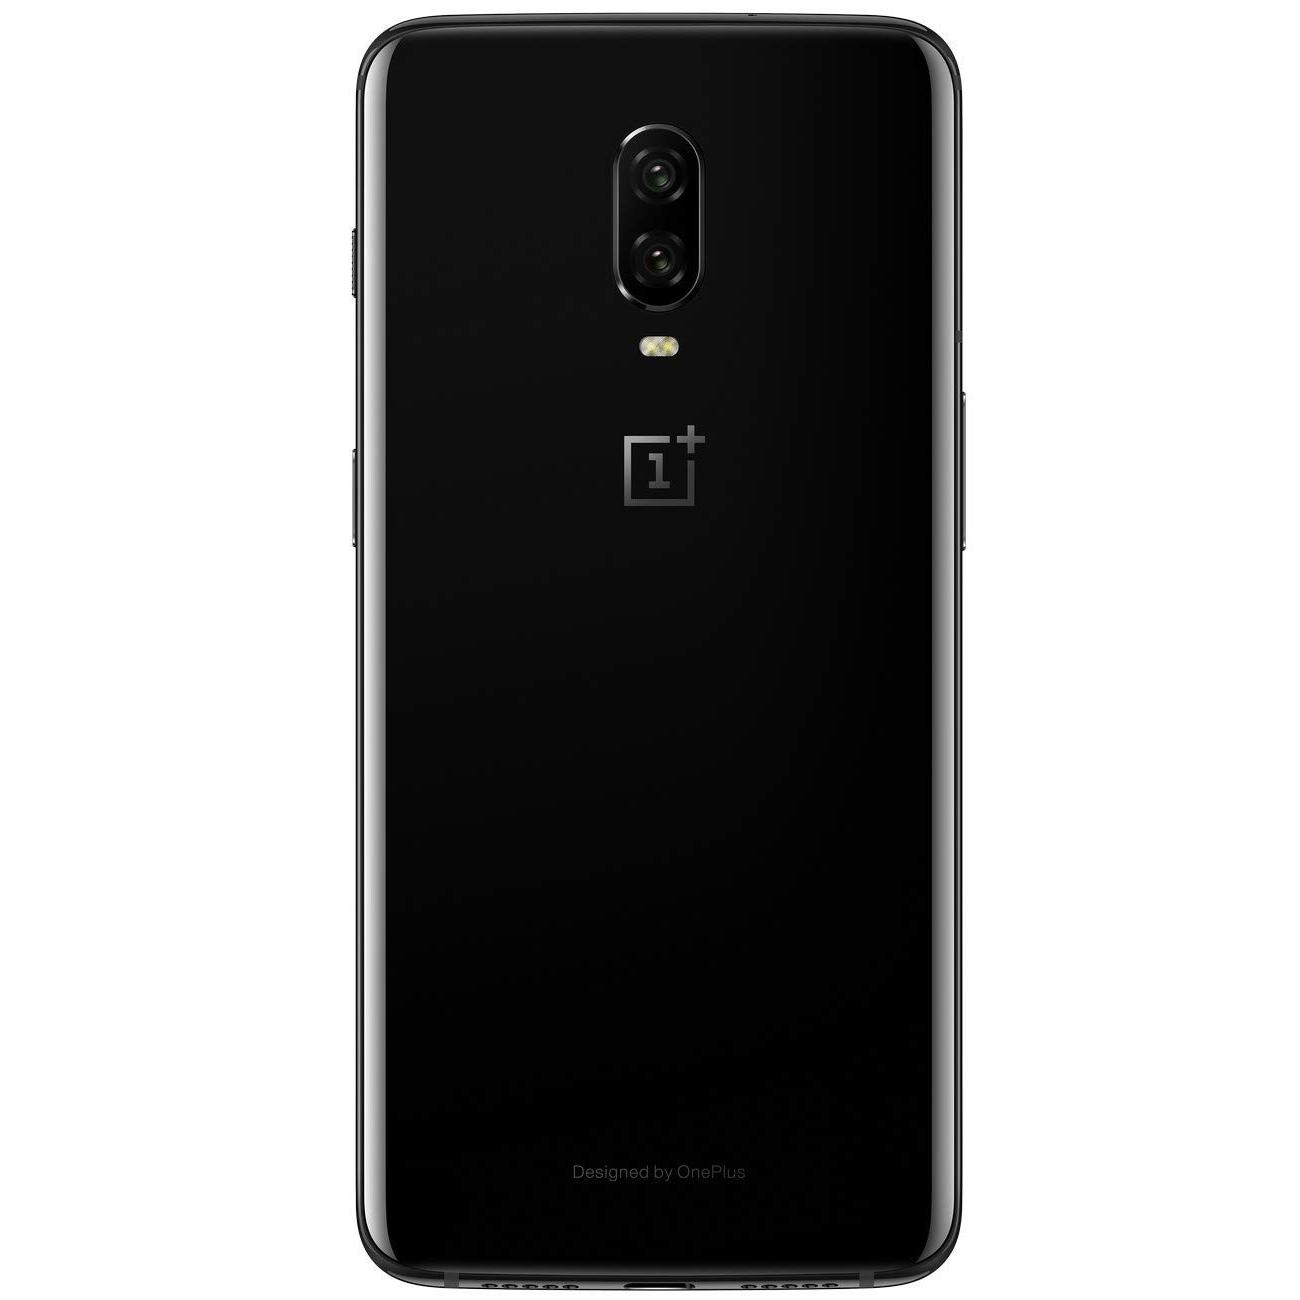 6T T-Mobile